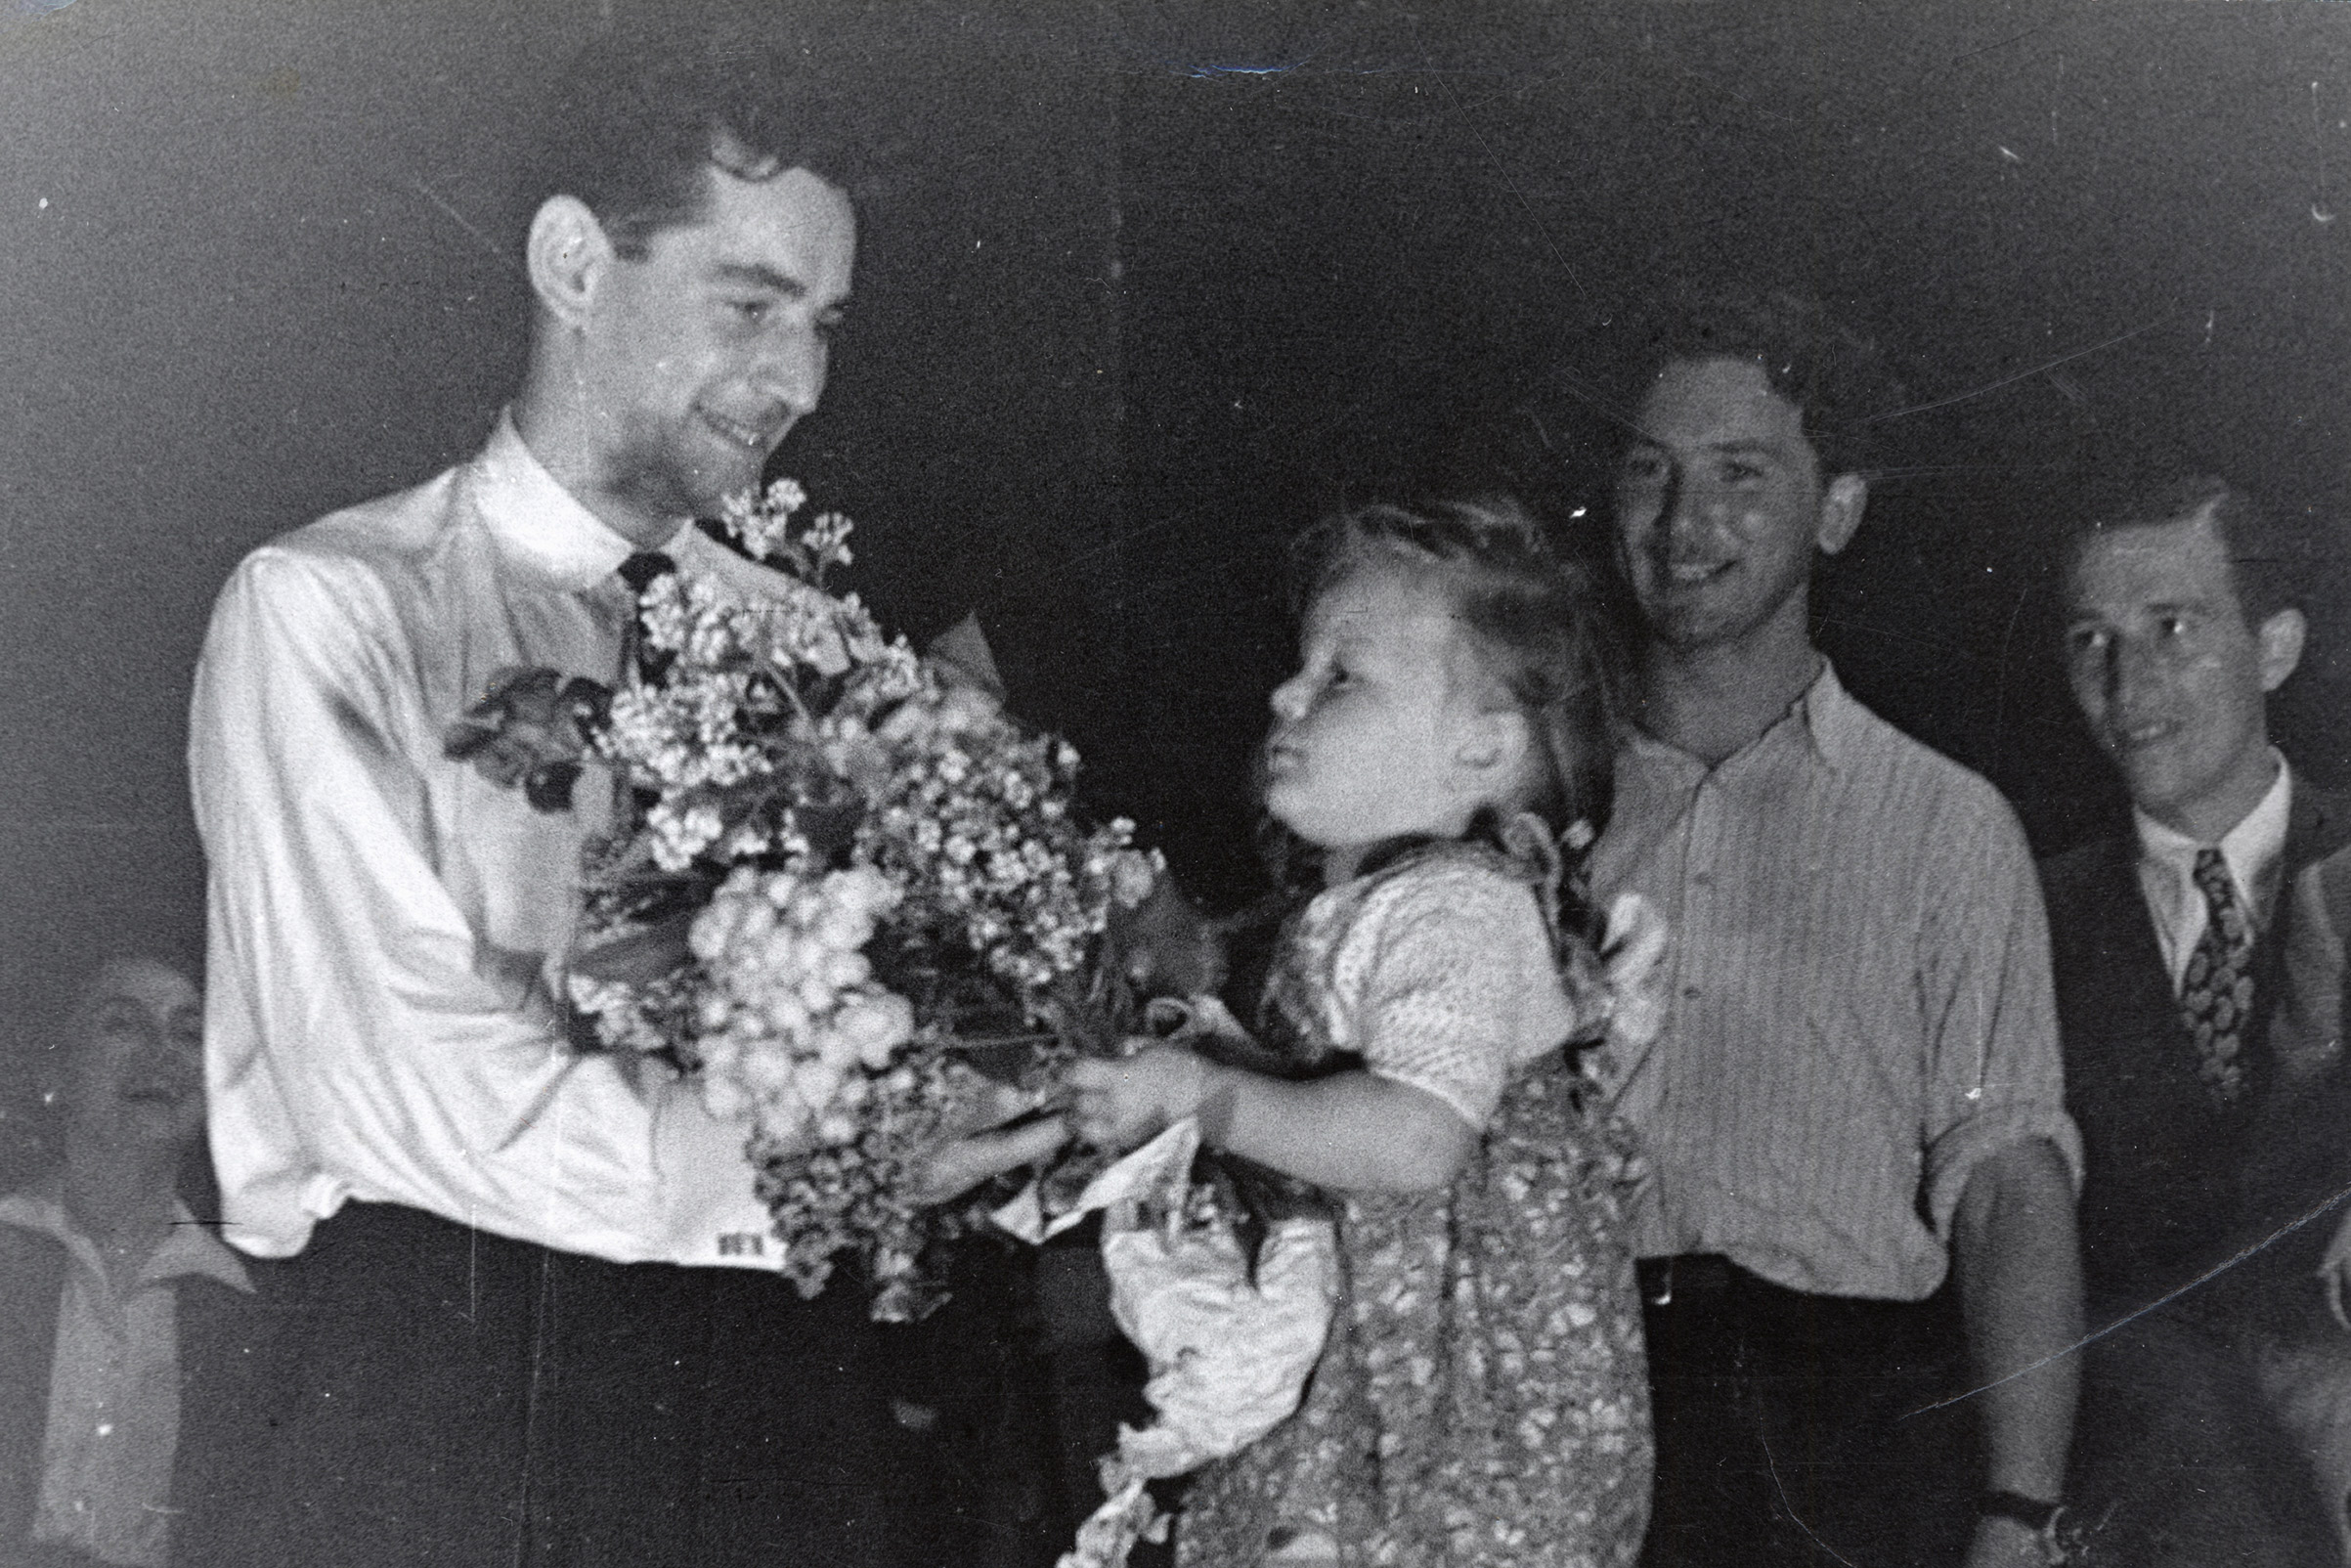 Leonard Bernstein receives flowers from an admirer after conducting an orchestra of concentration camp survivors for a concert sponsored by the American Jewish Joint Distribution Committee on May 10, 1948, outside Munich.